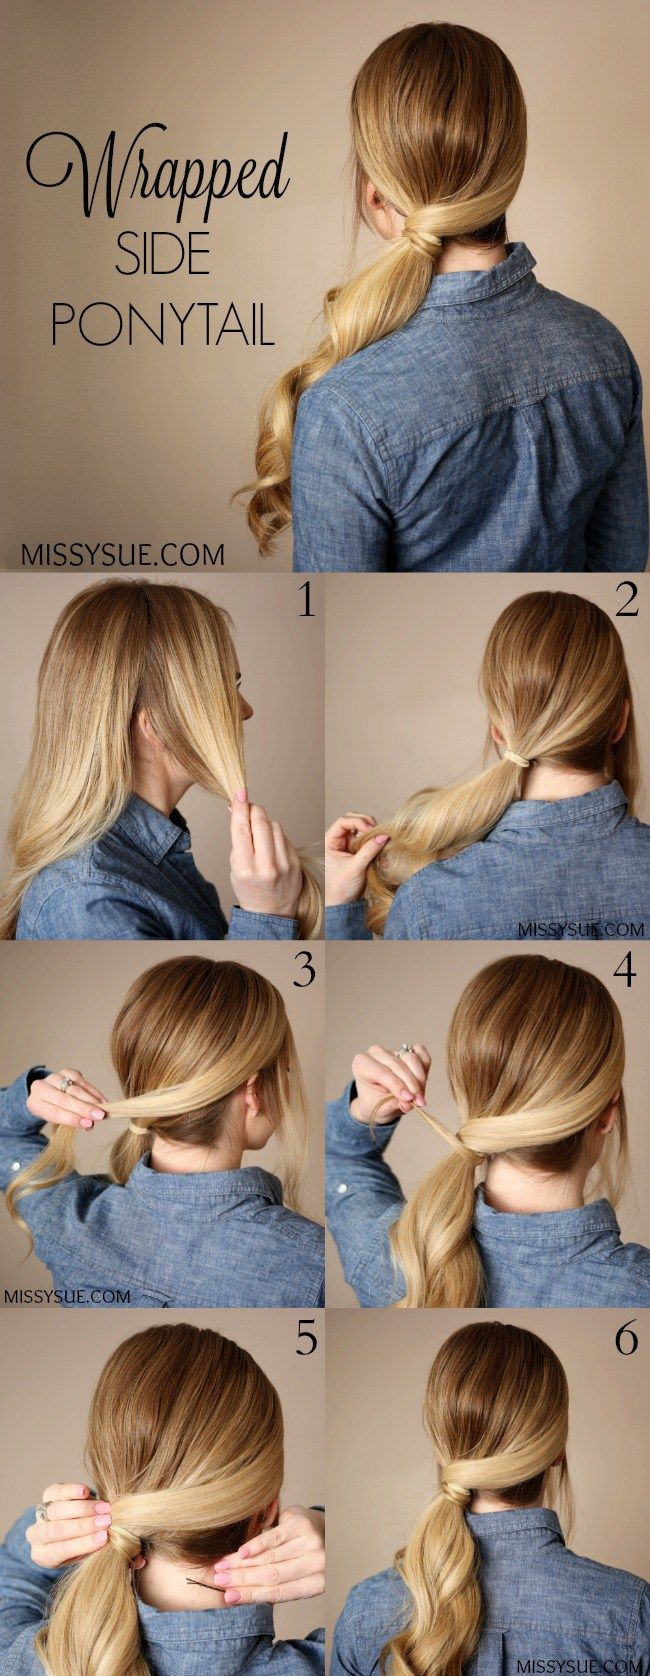 Wrapped Side Ponytail Missy Sue Ponytail Hairstyles Tutorial Side Ponytail Hairstyles Hair Styles